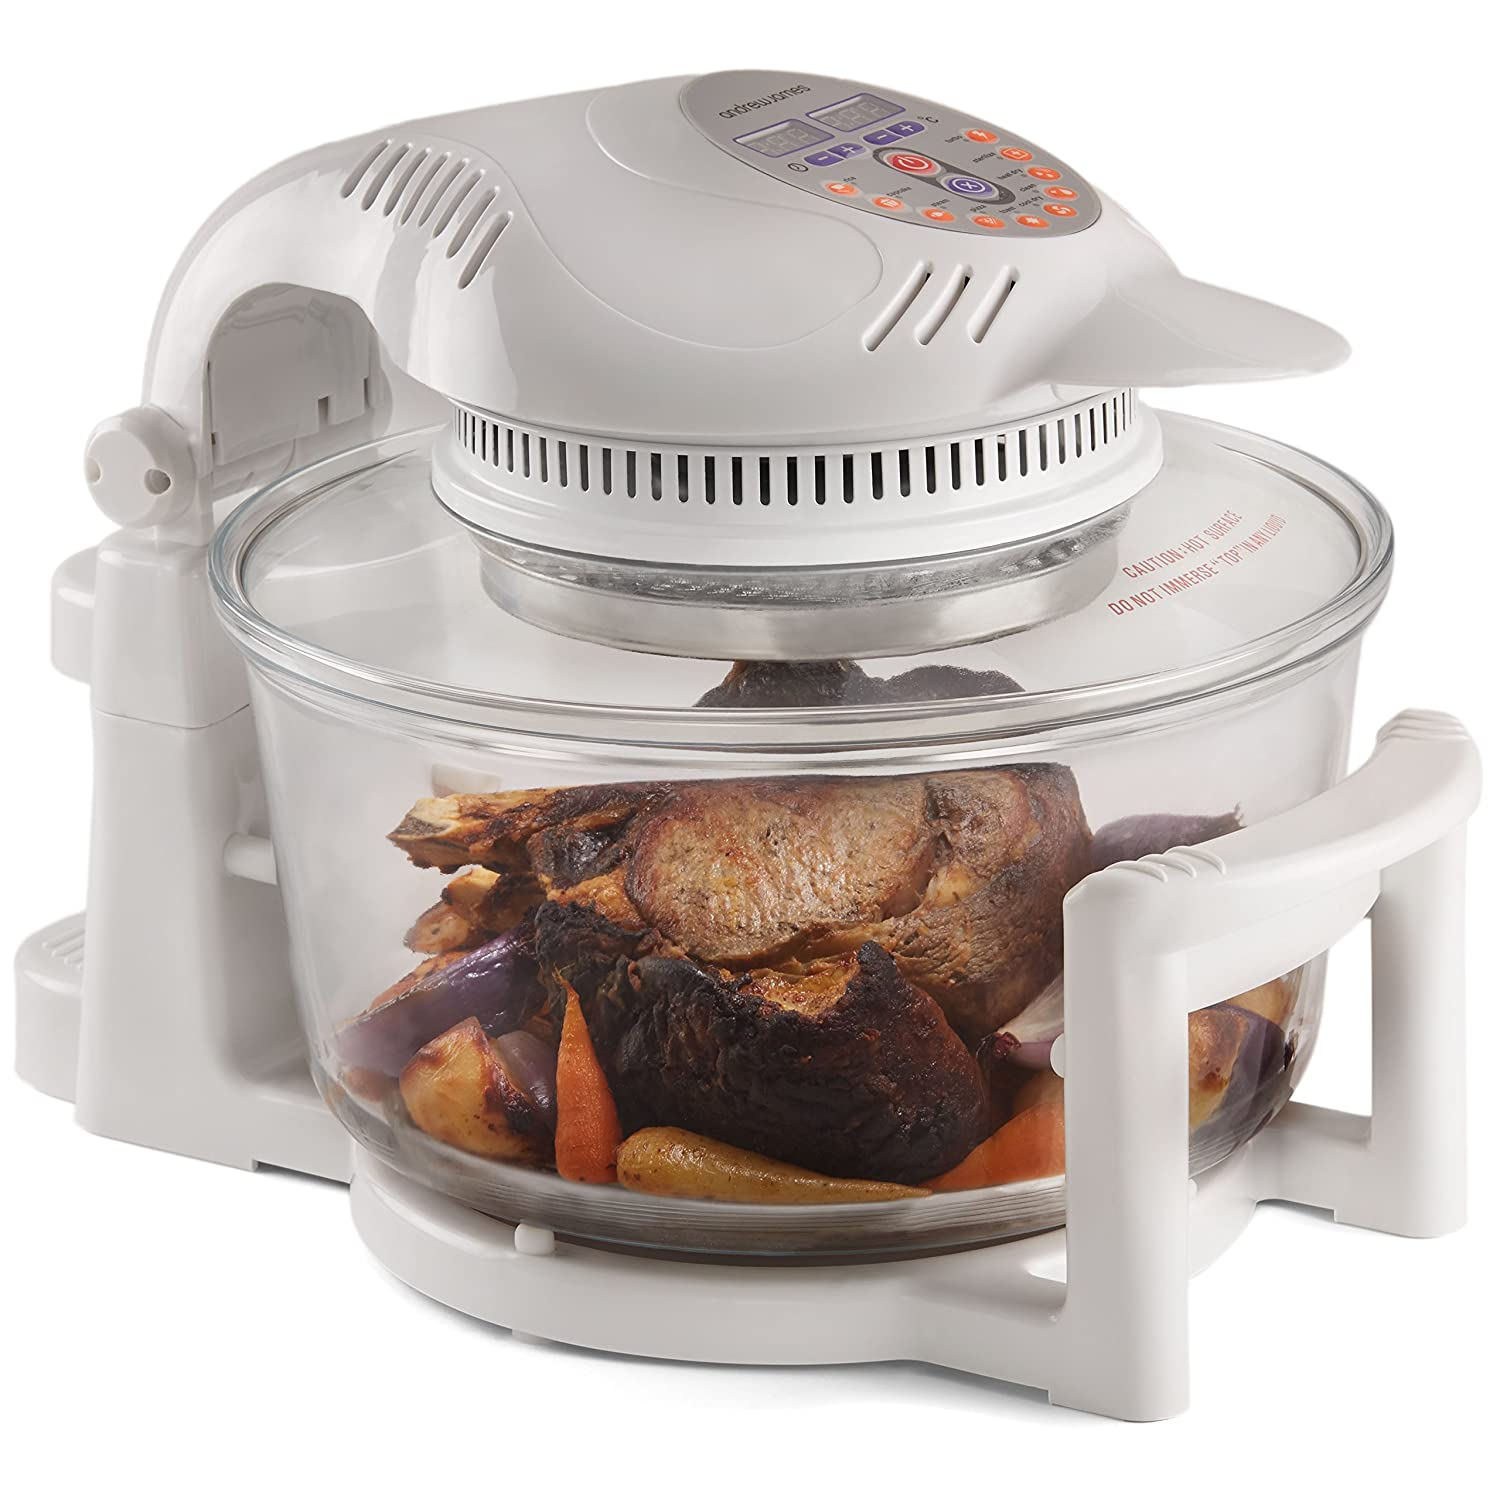 White Digital 1400W Digital Andrew James halogen cooker